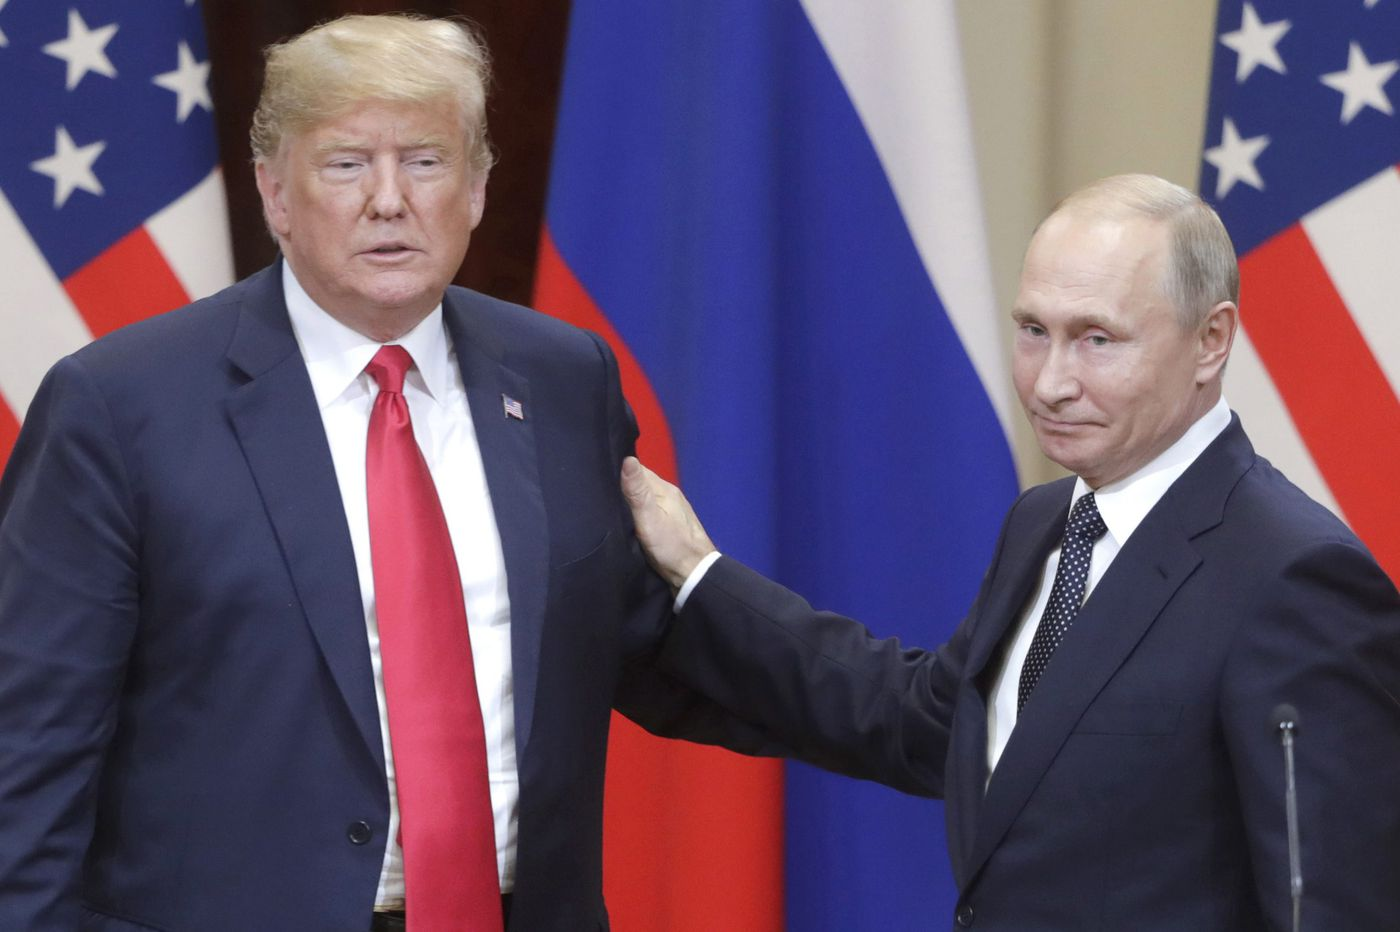 Putin tests Trump mettle with military attack on Ukraine ships   Trudy Rubin